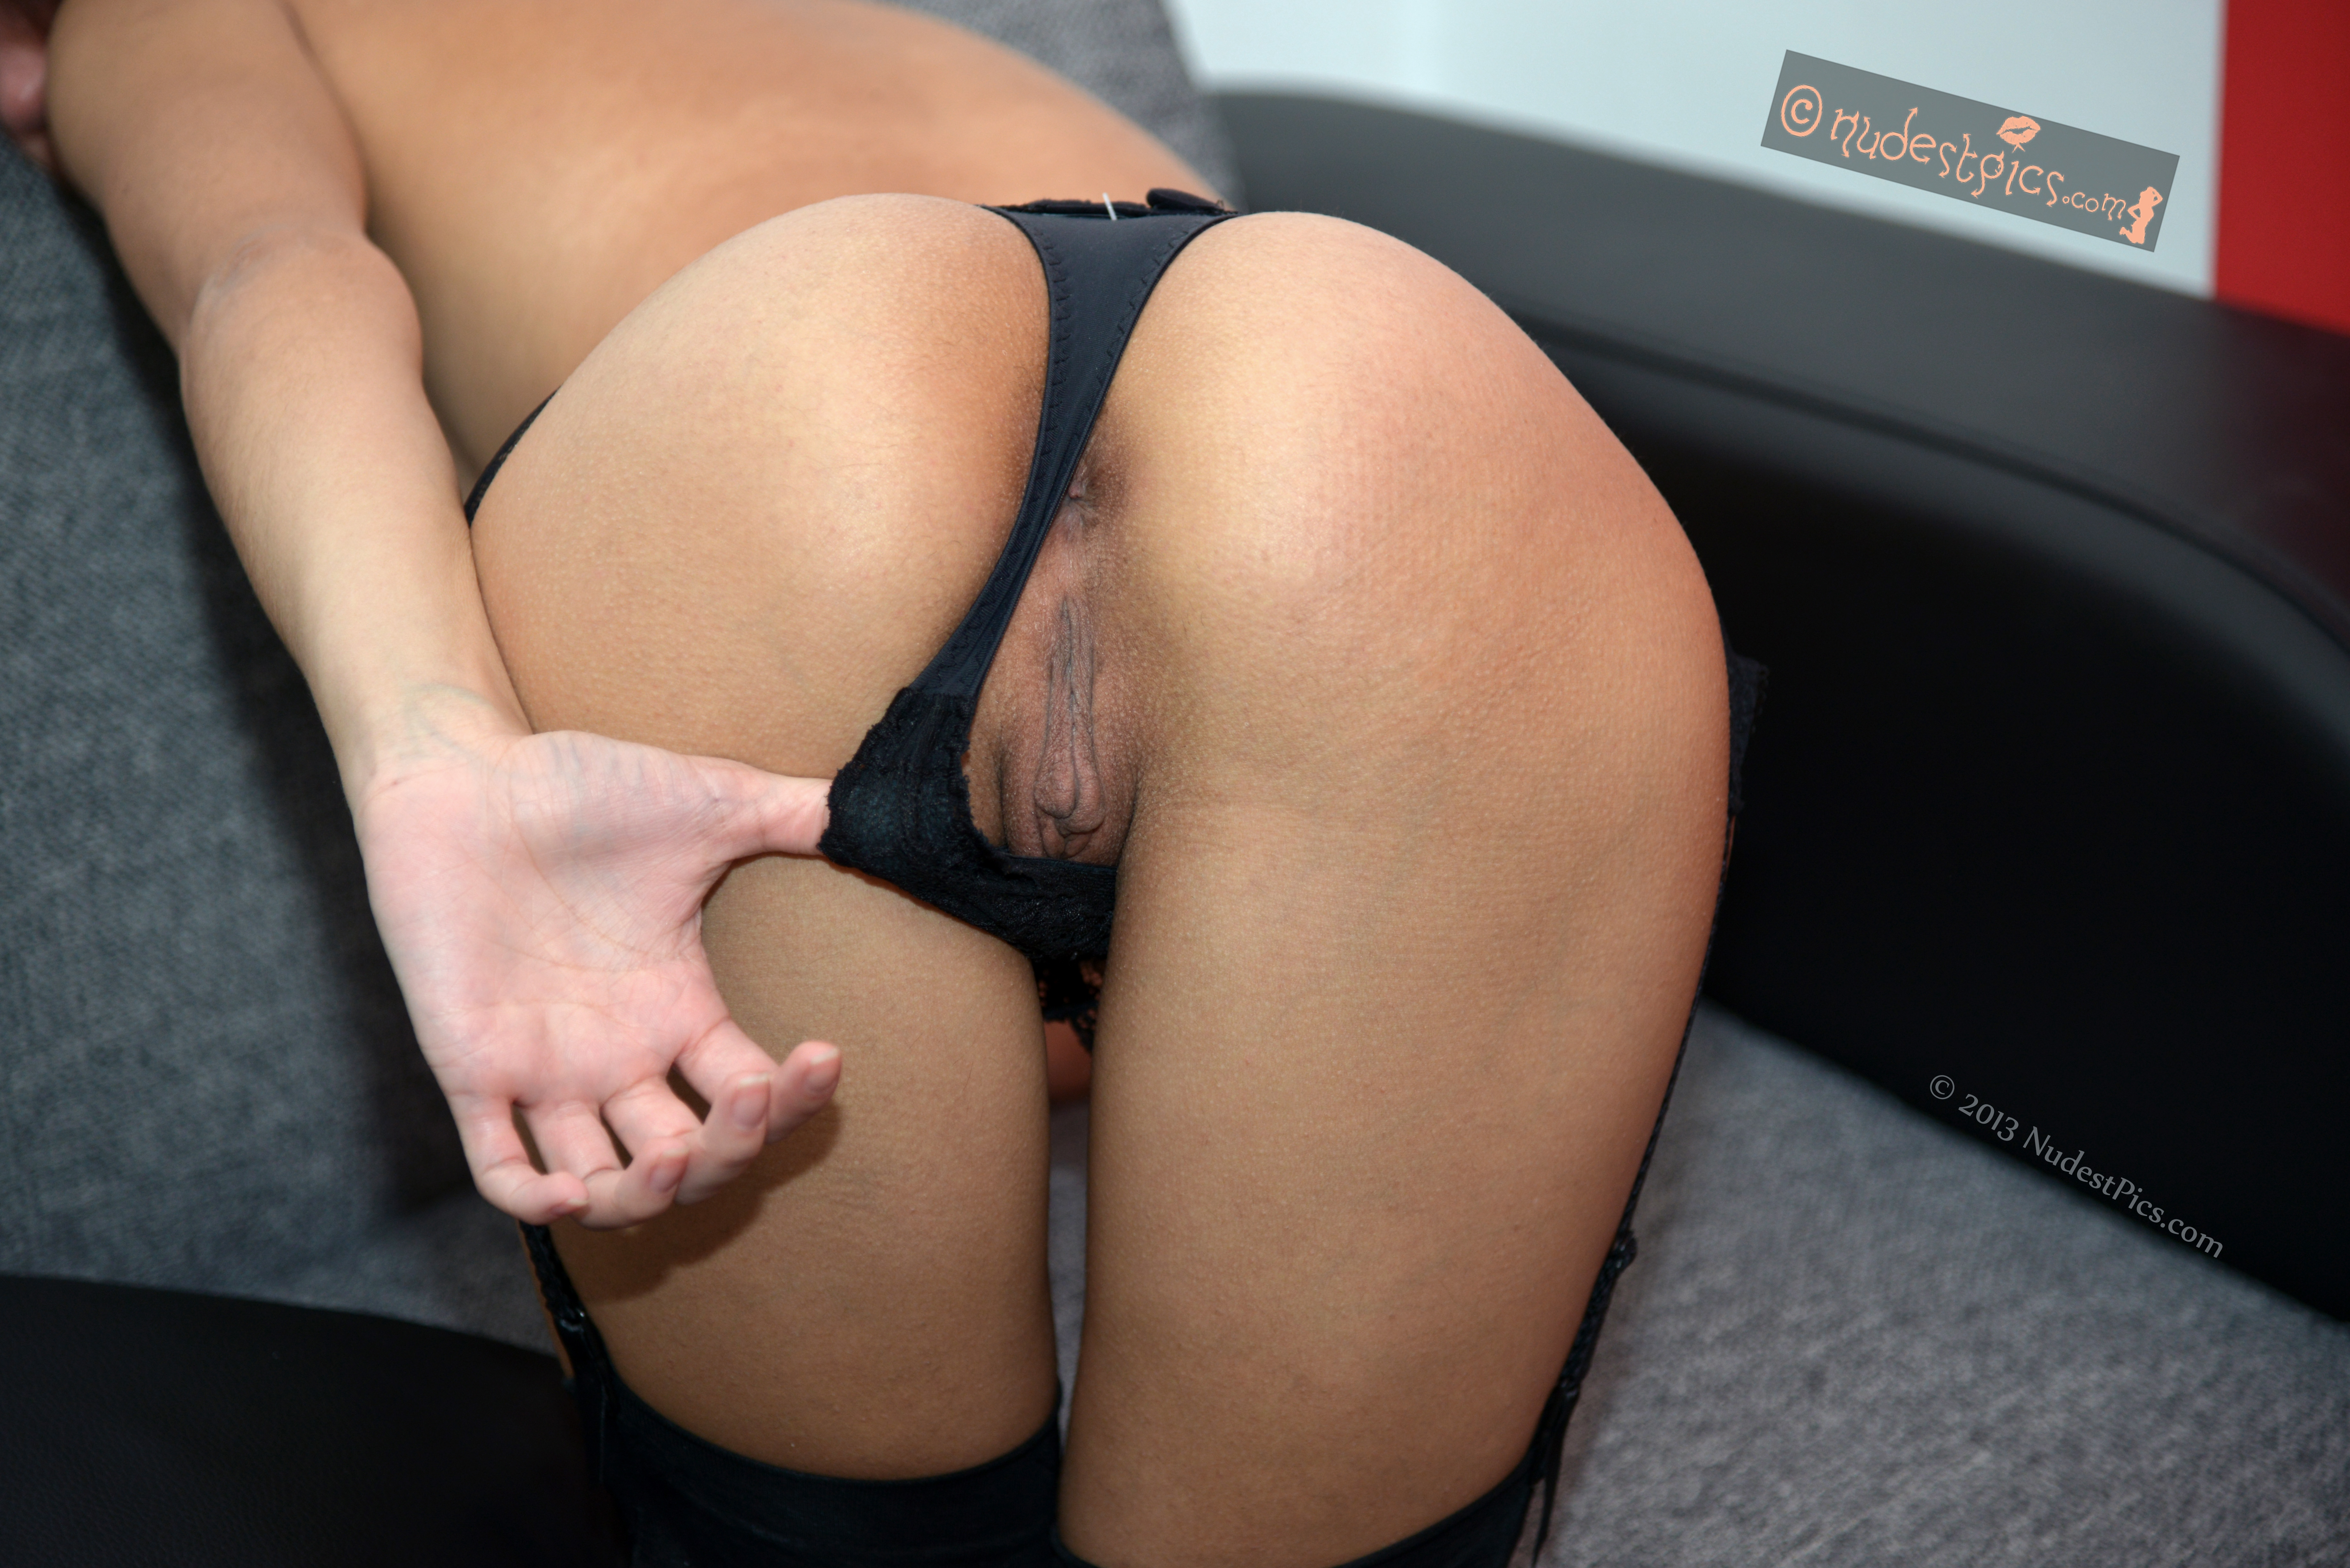 Bent Over In A Thong